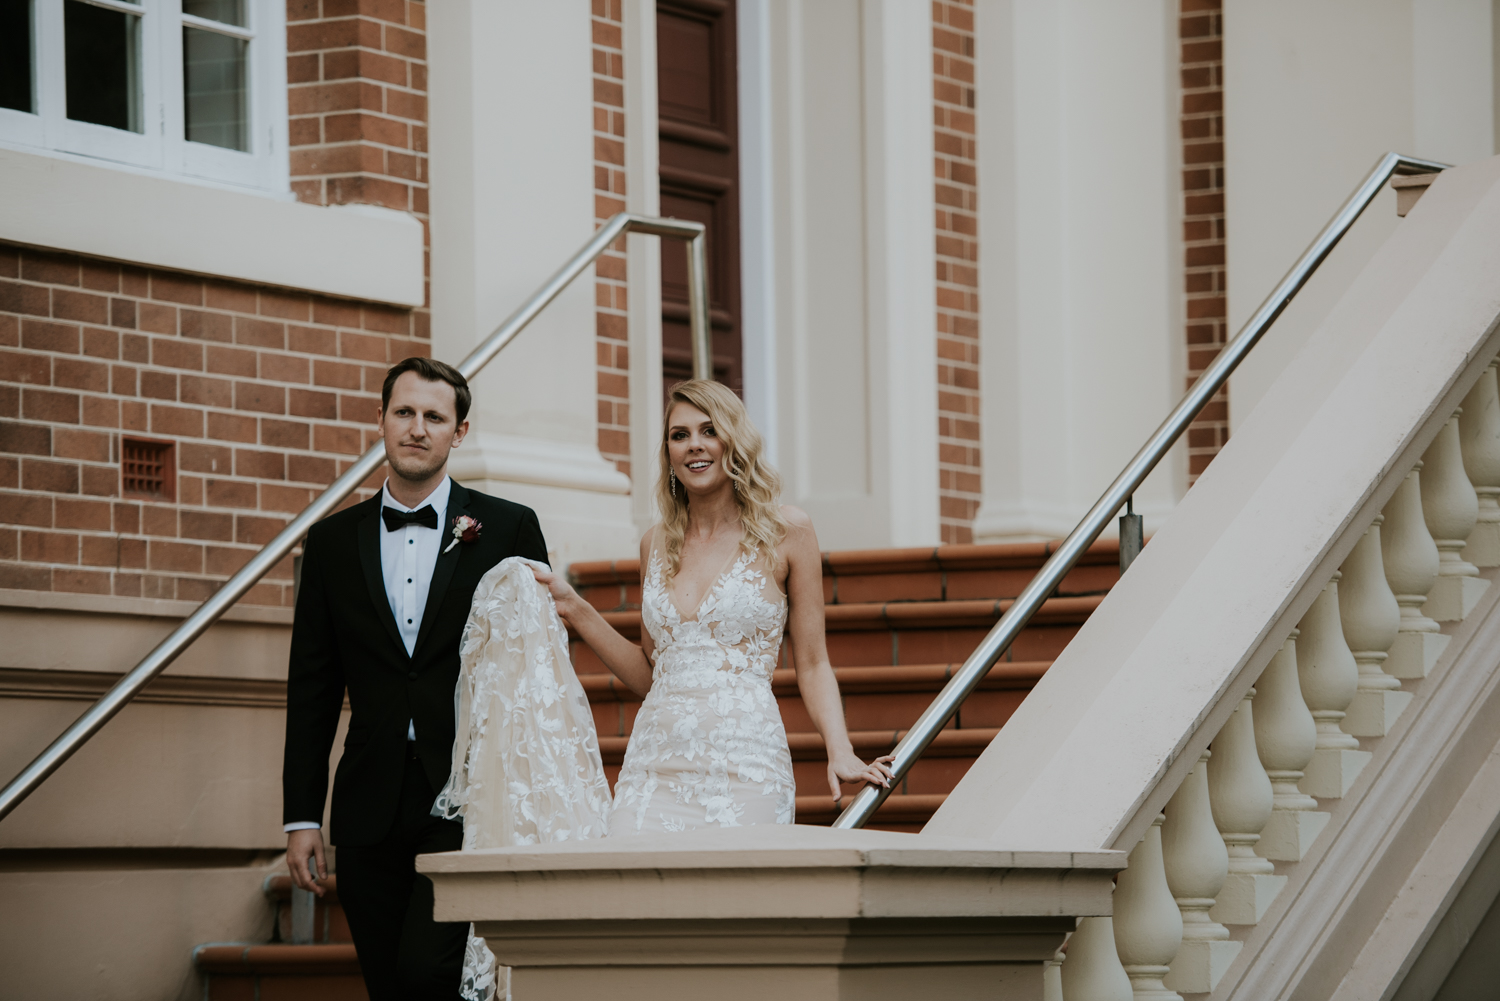 Brisbane Wedding Photographer | Engagement-Elopement Photography | Factory51-City Botantic Gardens Wedding-60.jpg